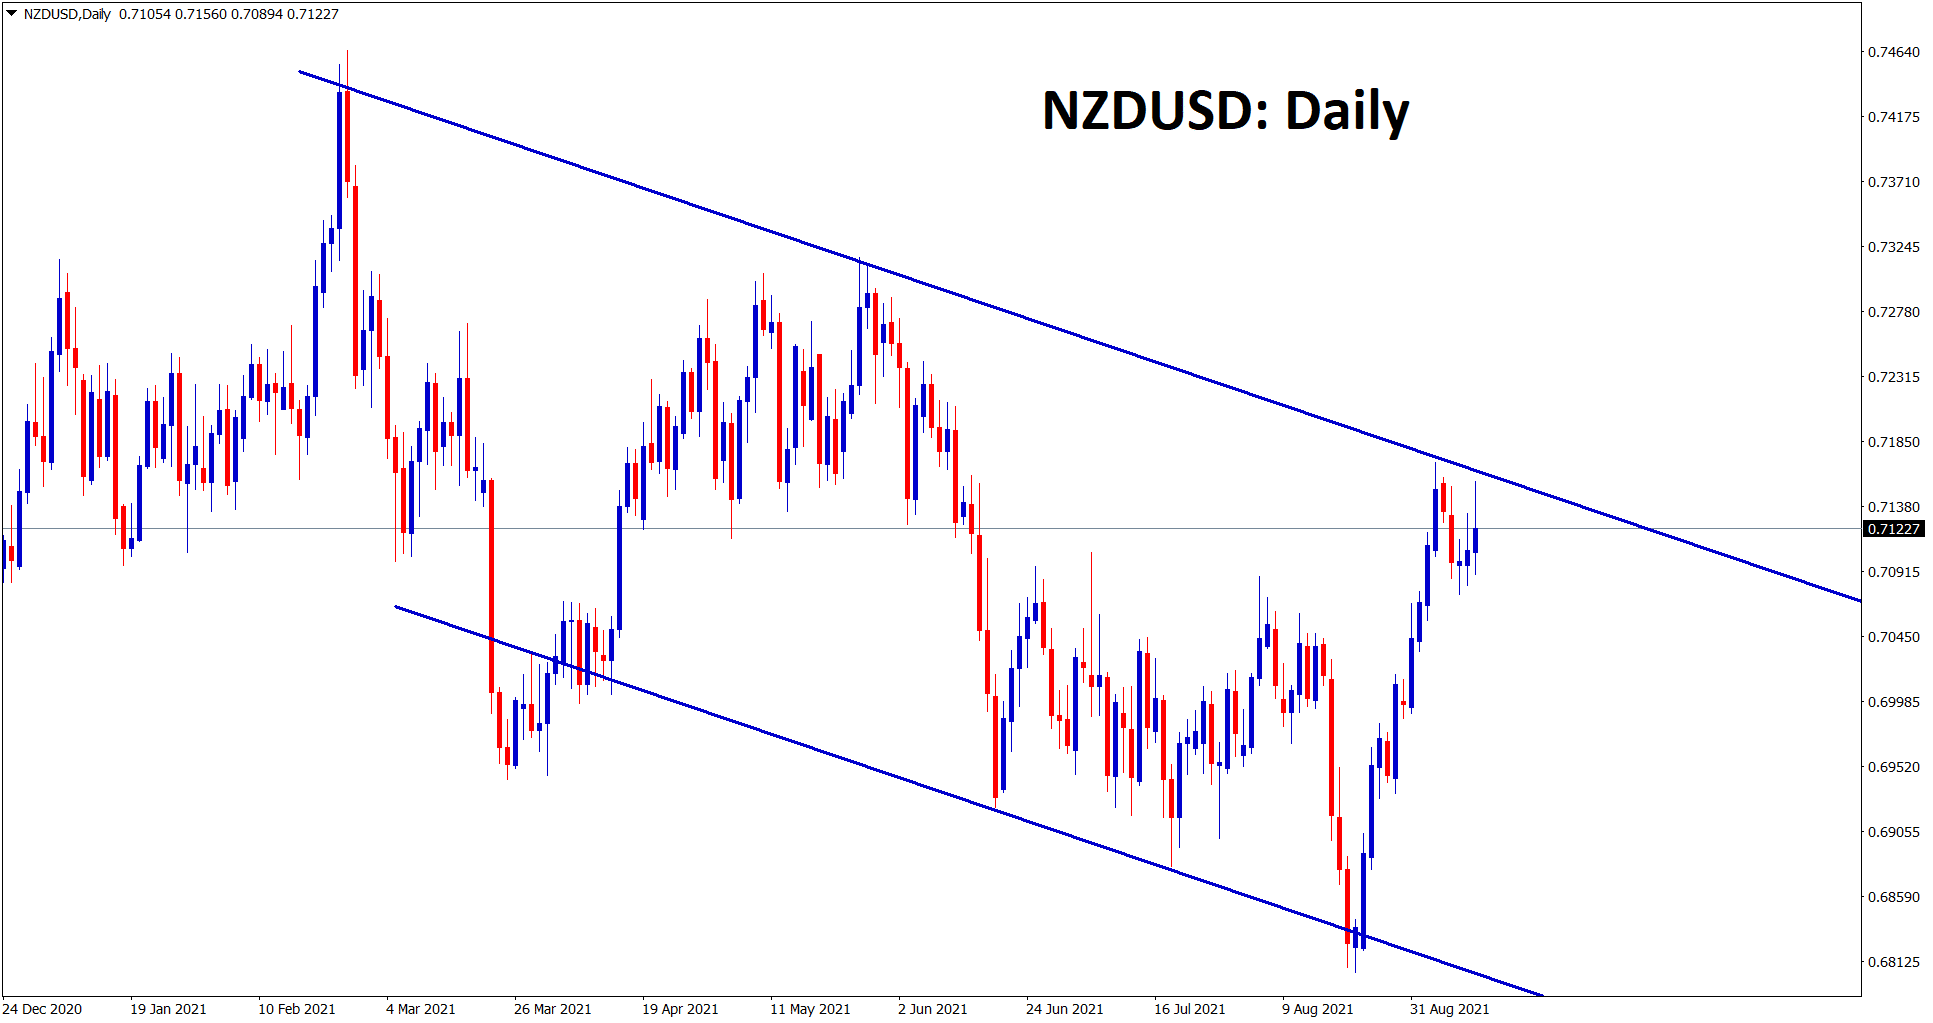 NZDUSD is consolidating at the lower high area of the downtrend line